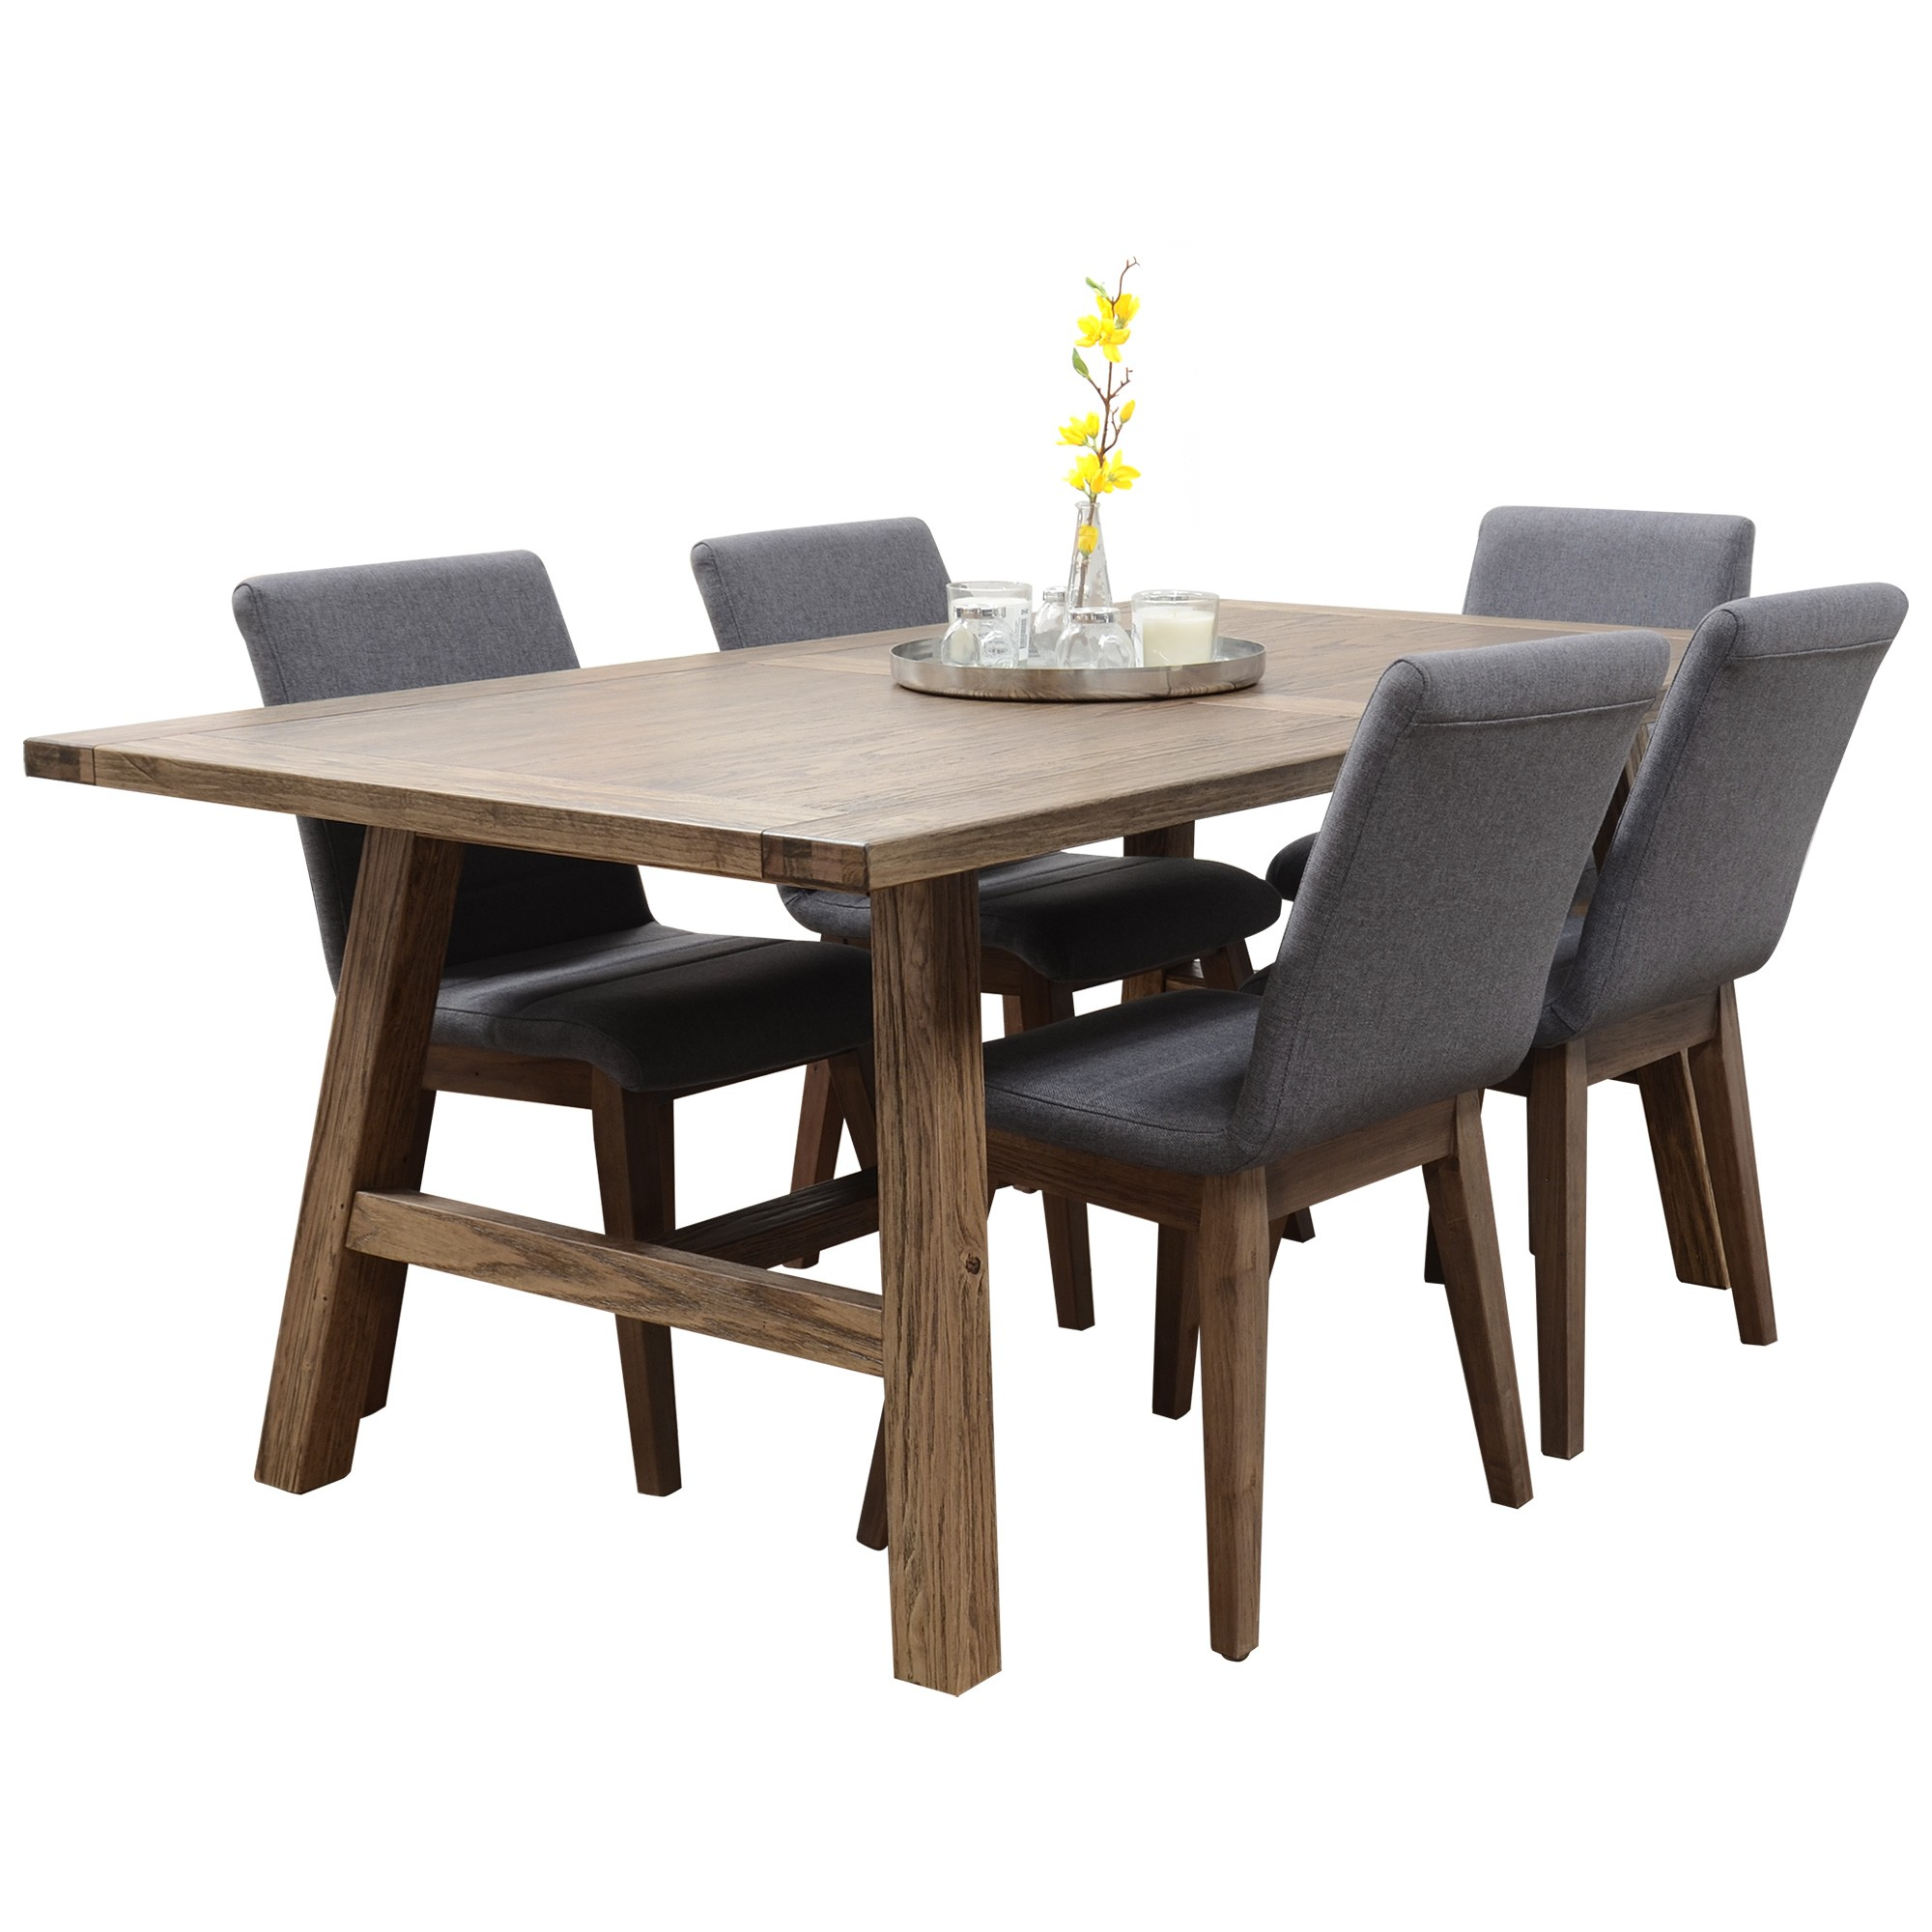 Harold Mountain Ash Timber 9 Piece Dining Table Set, 210cm, Smoke